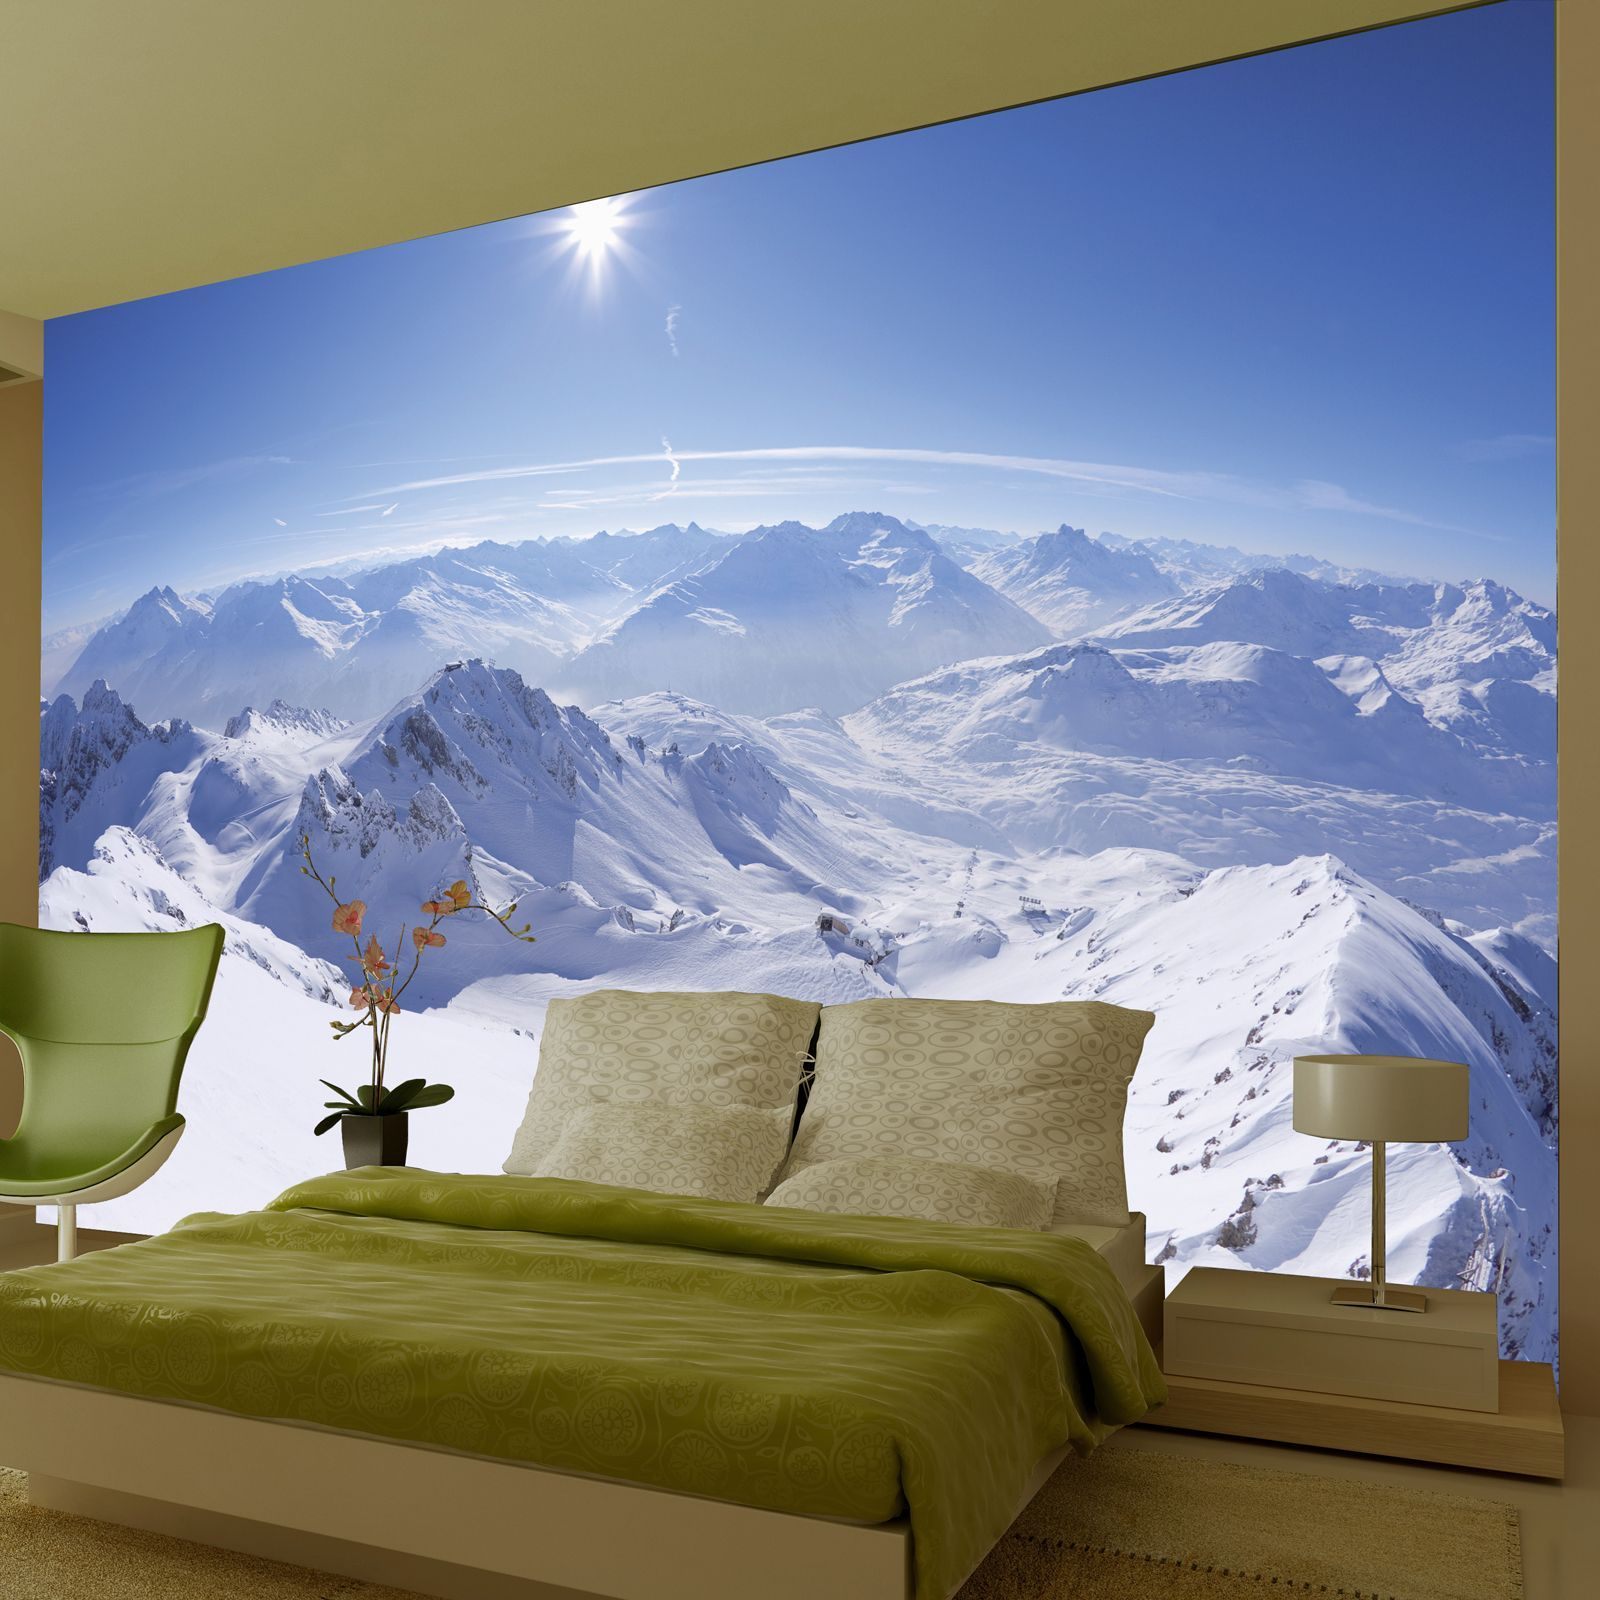 Large wallpaper feature wall murals landscapes for Custom mural wallpaper uk